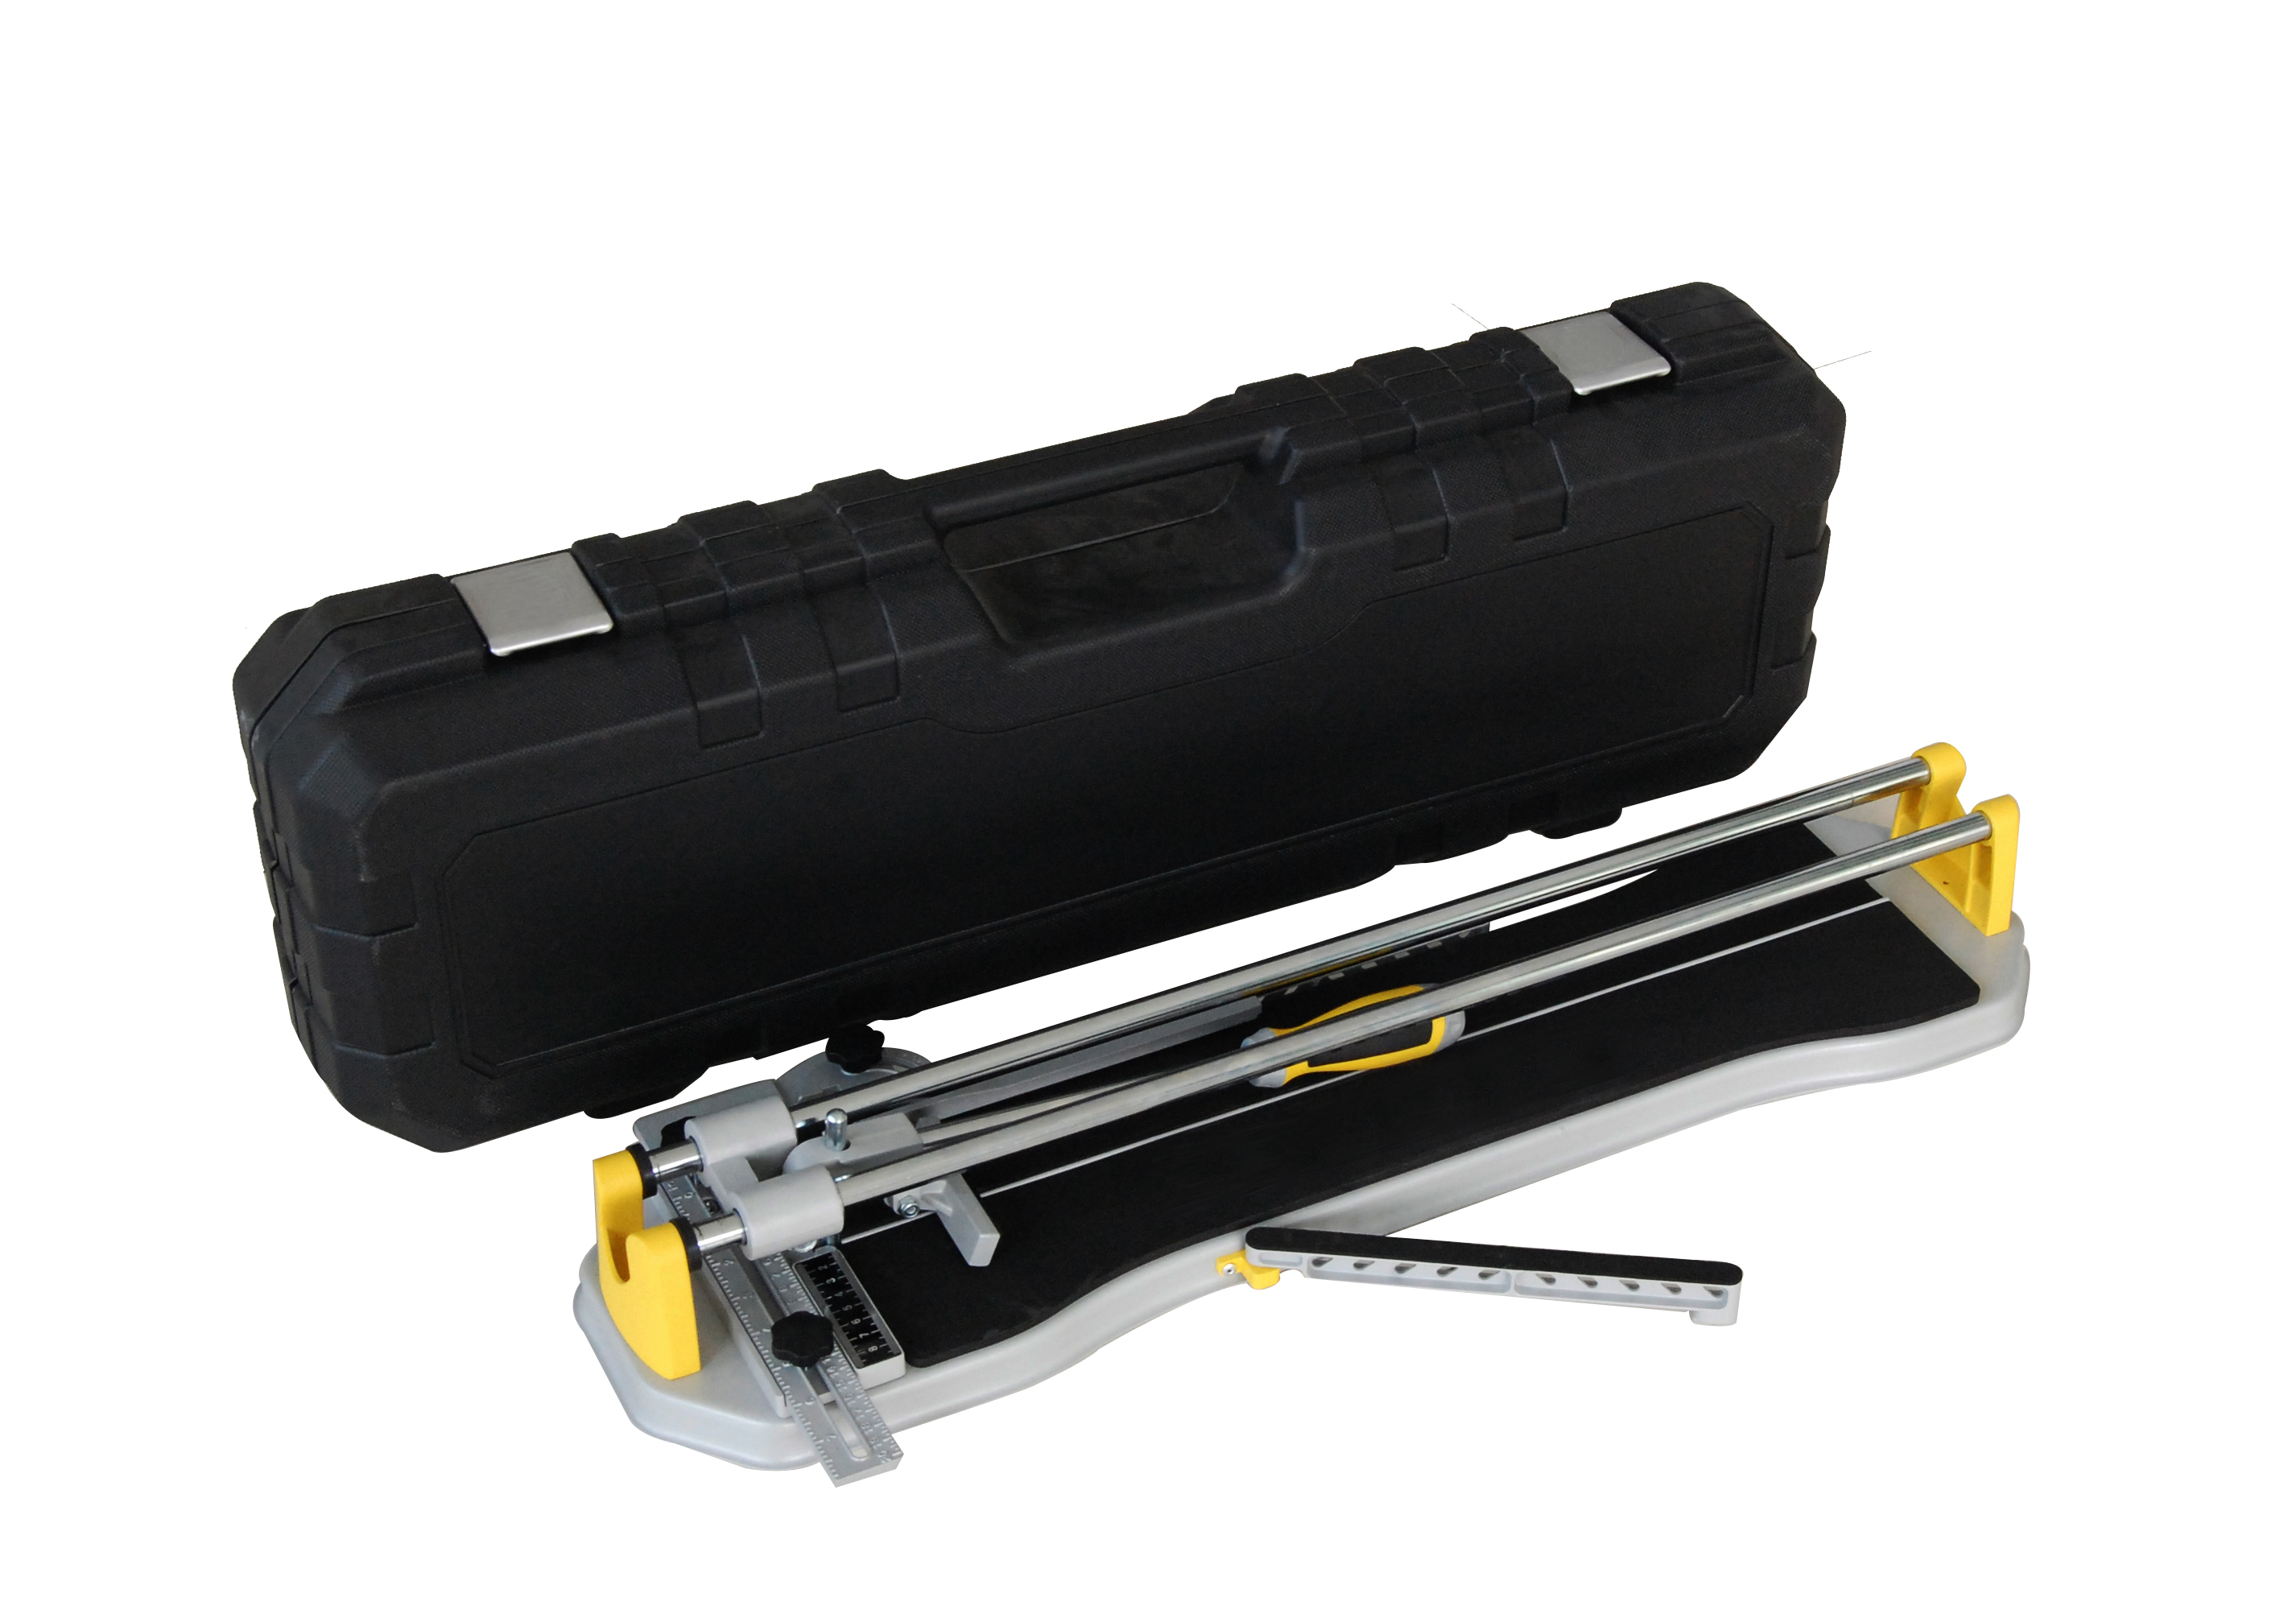 Manual Tiles Cutting Machine 2 ft with carrying case